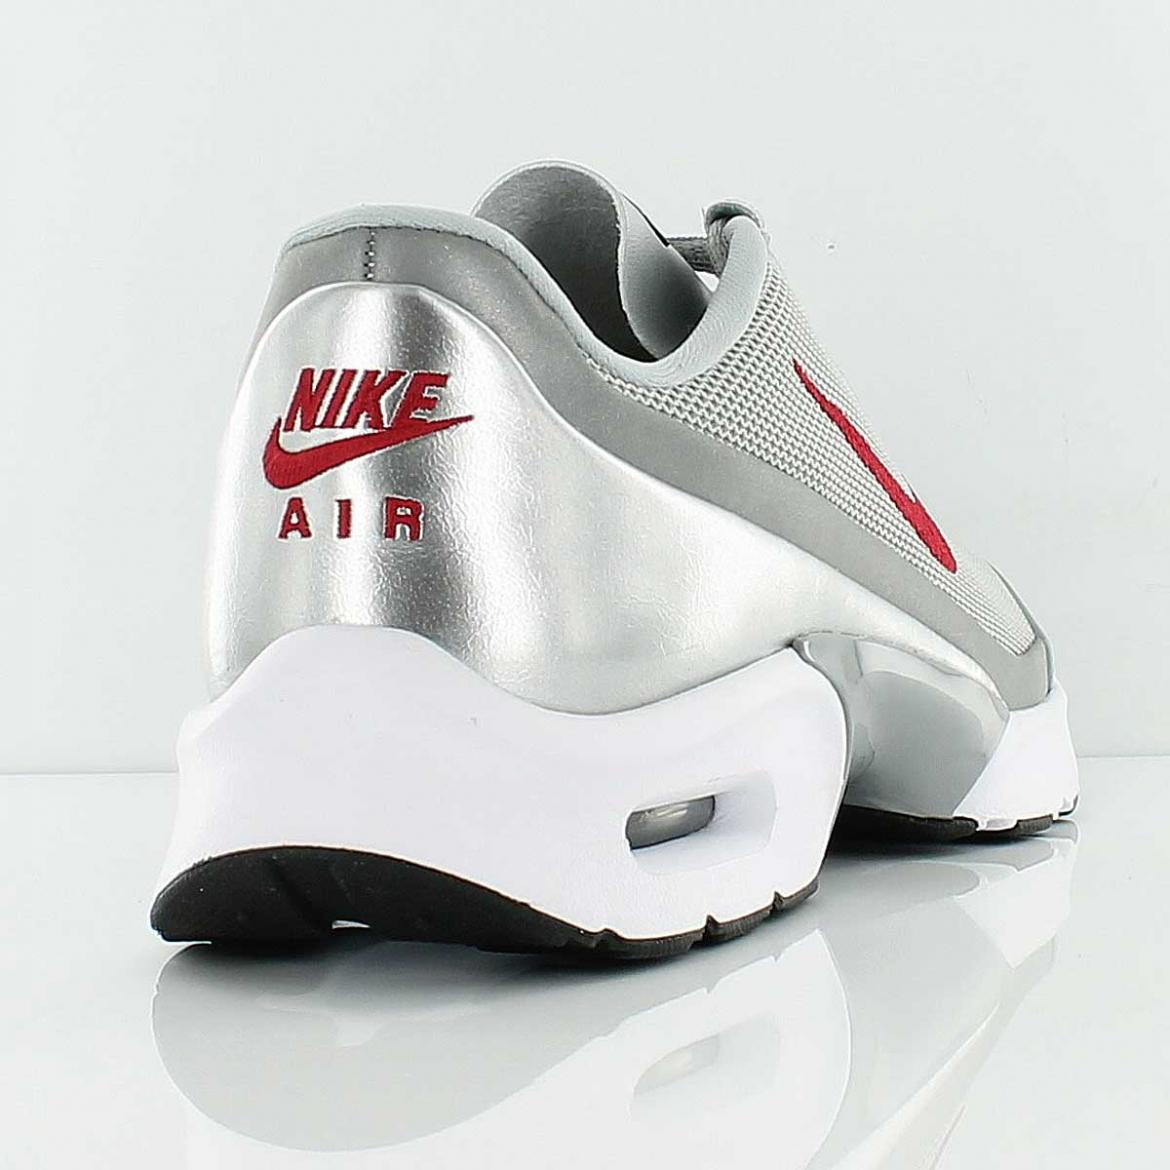 nike air max rouge et blanche femme